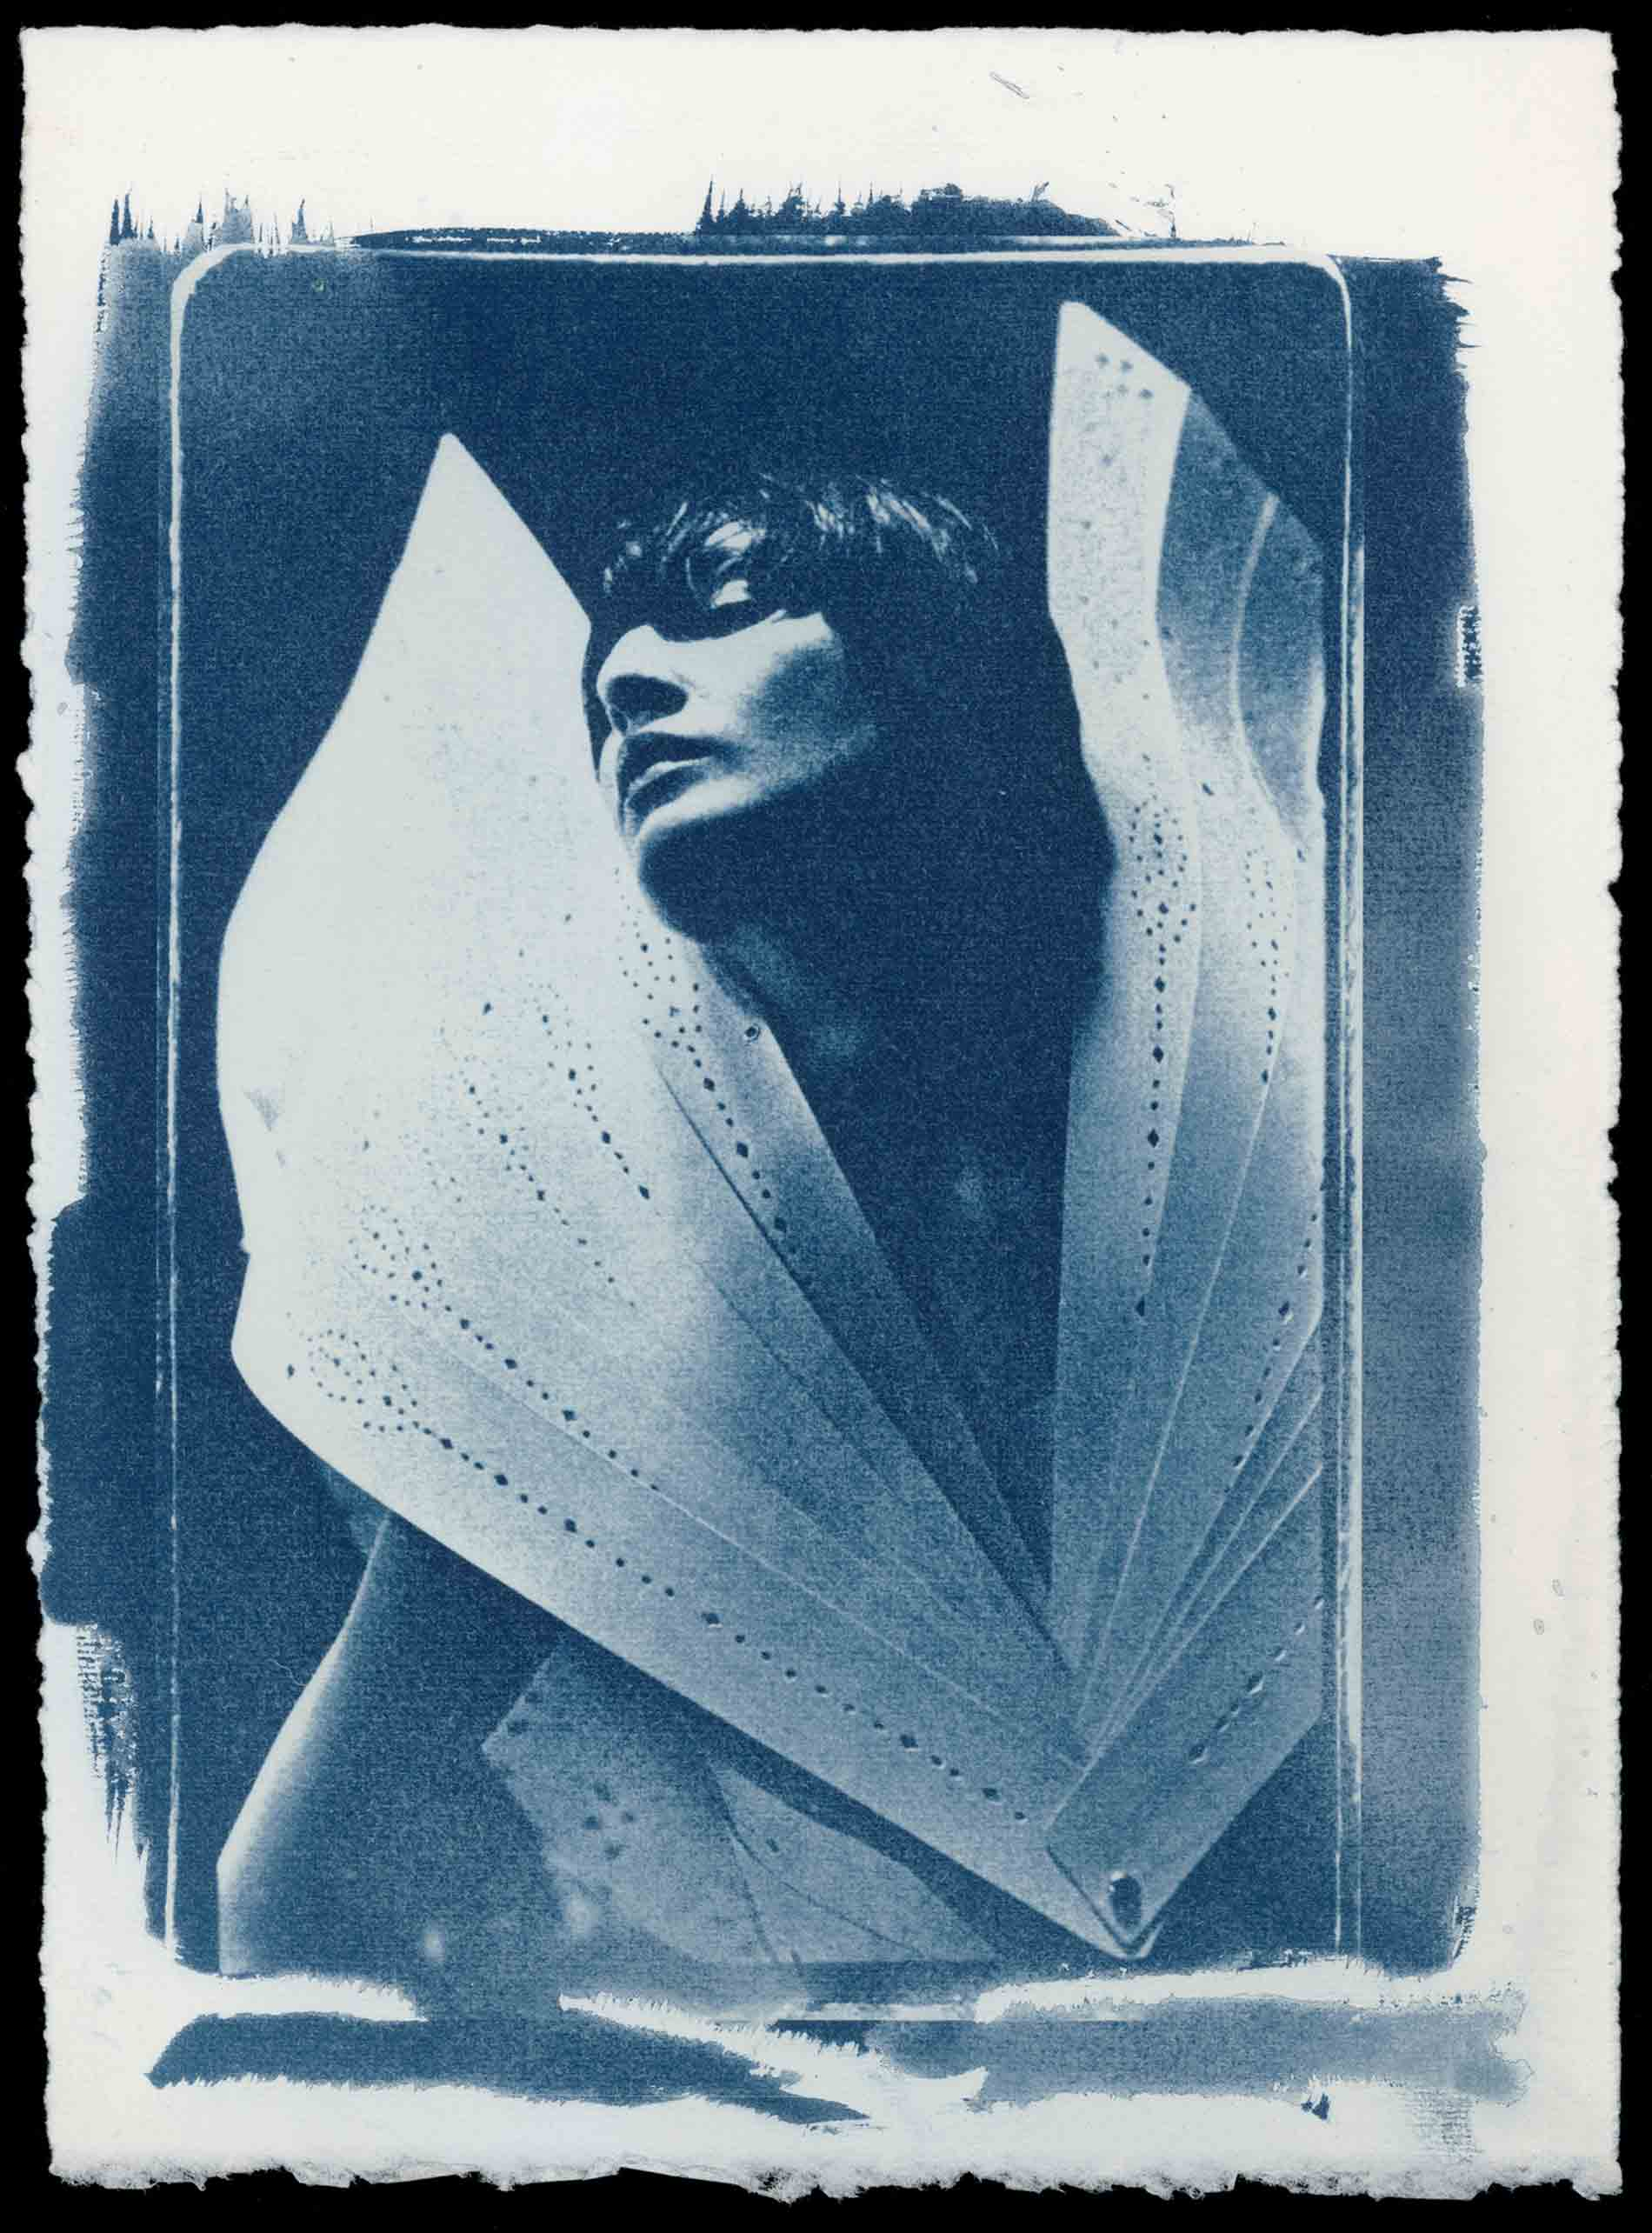 Ann Ray,  Erin as Angel , London, 1998 (N° 13, Erin O'Connor, cyanotype by the artist). Courtesy of the artist.